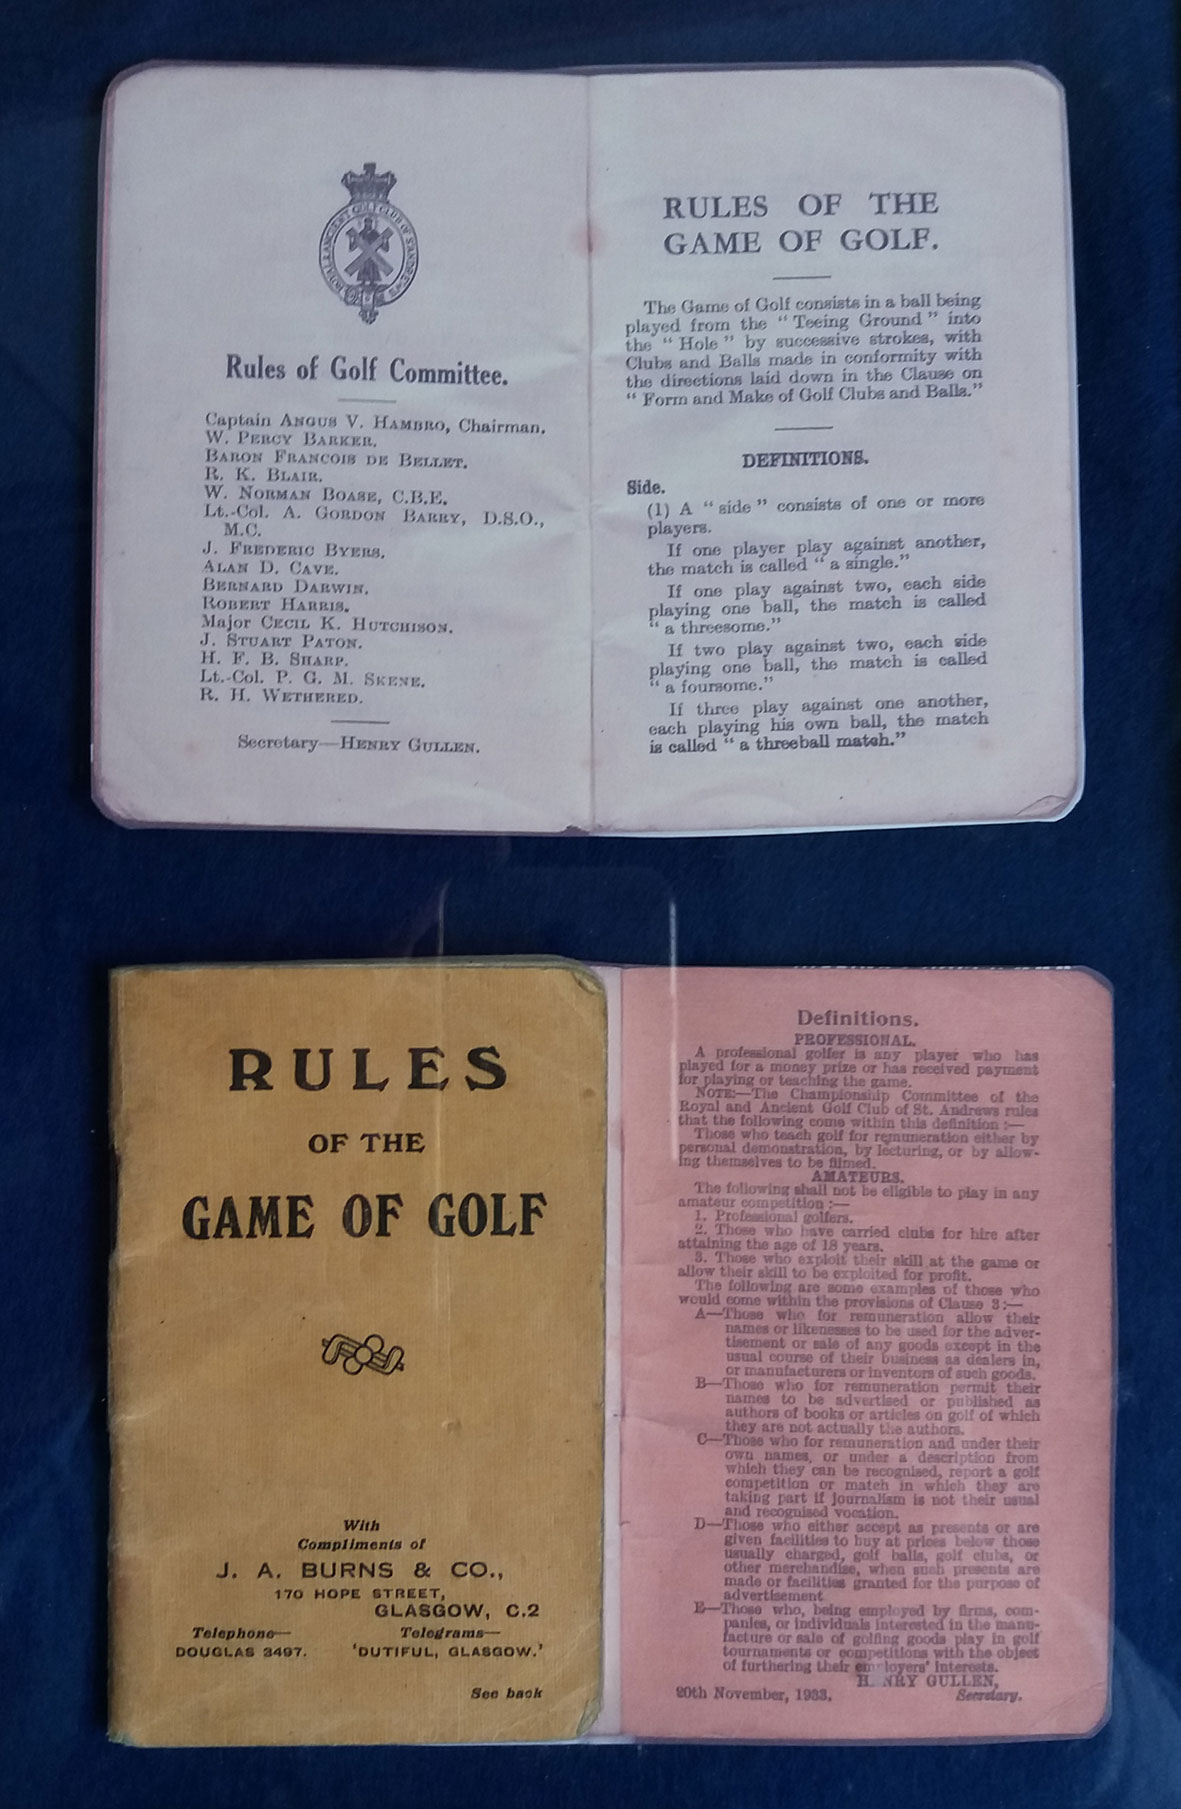 Images of a Golf Rules Book book dated 20th. November, 1933